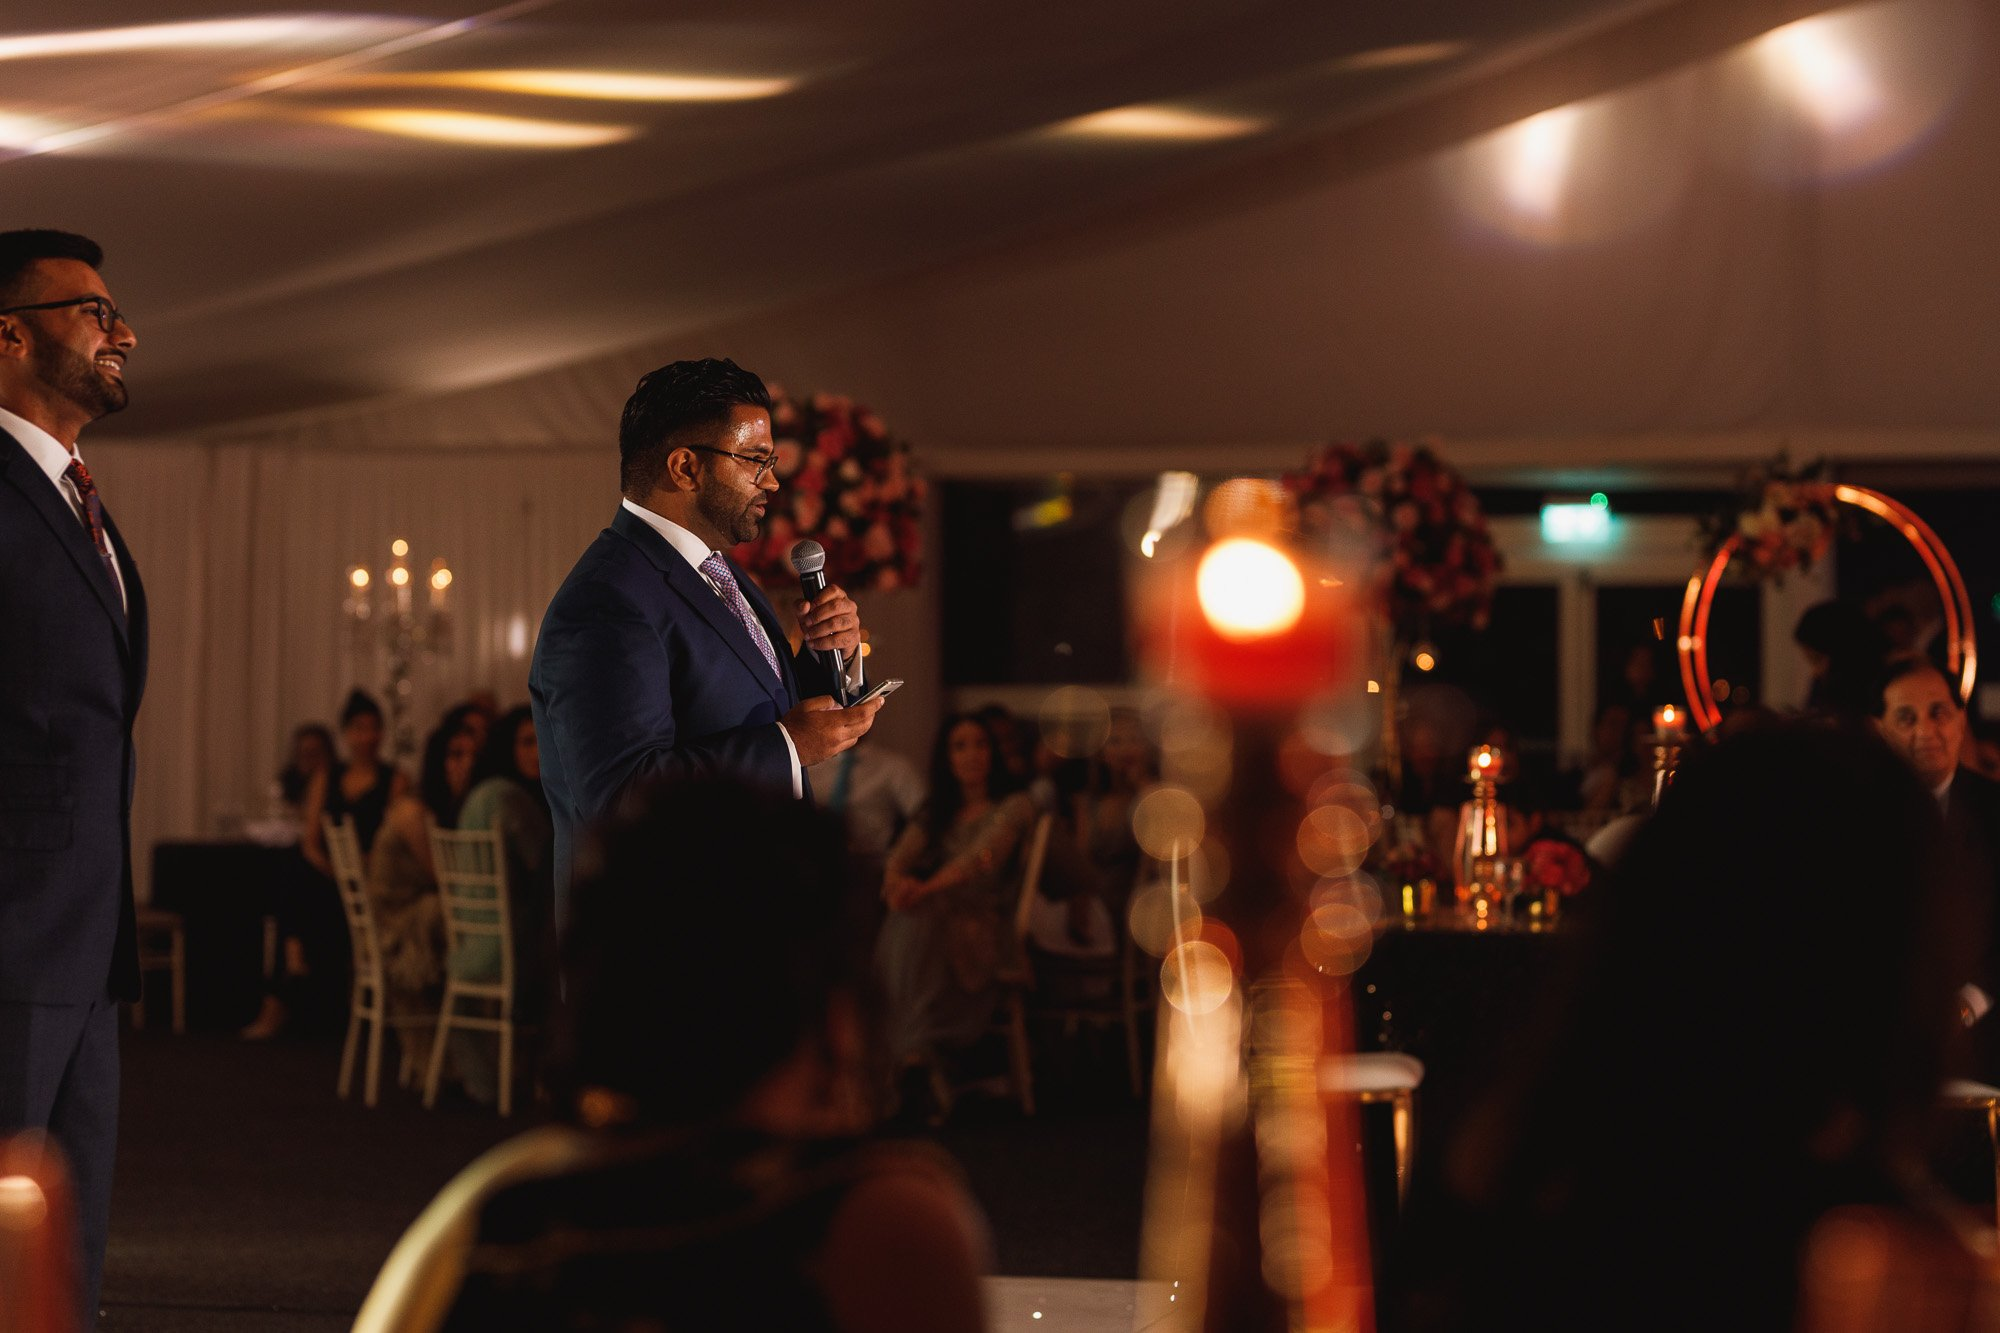 Heythrop Park Hotel, Oxfordshire, speeches